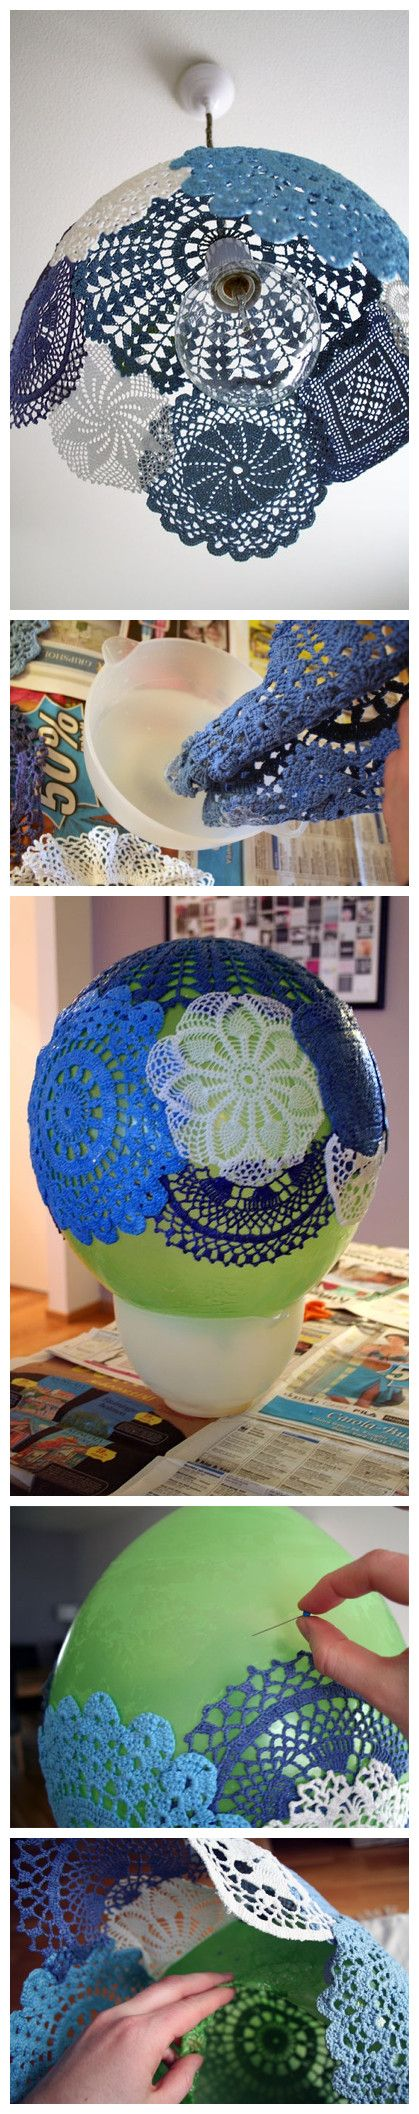 Clever clogs DIY Lace lampshade